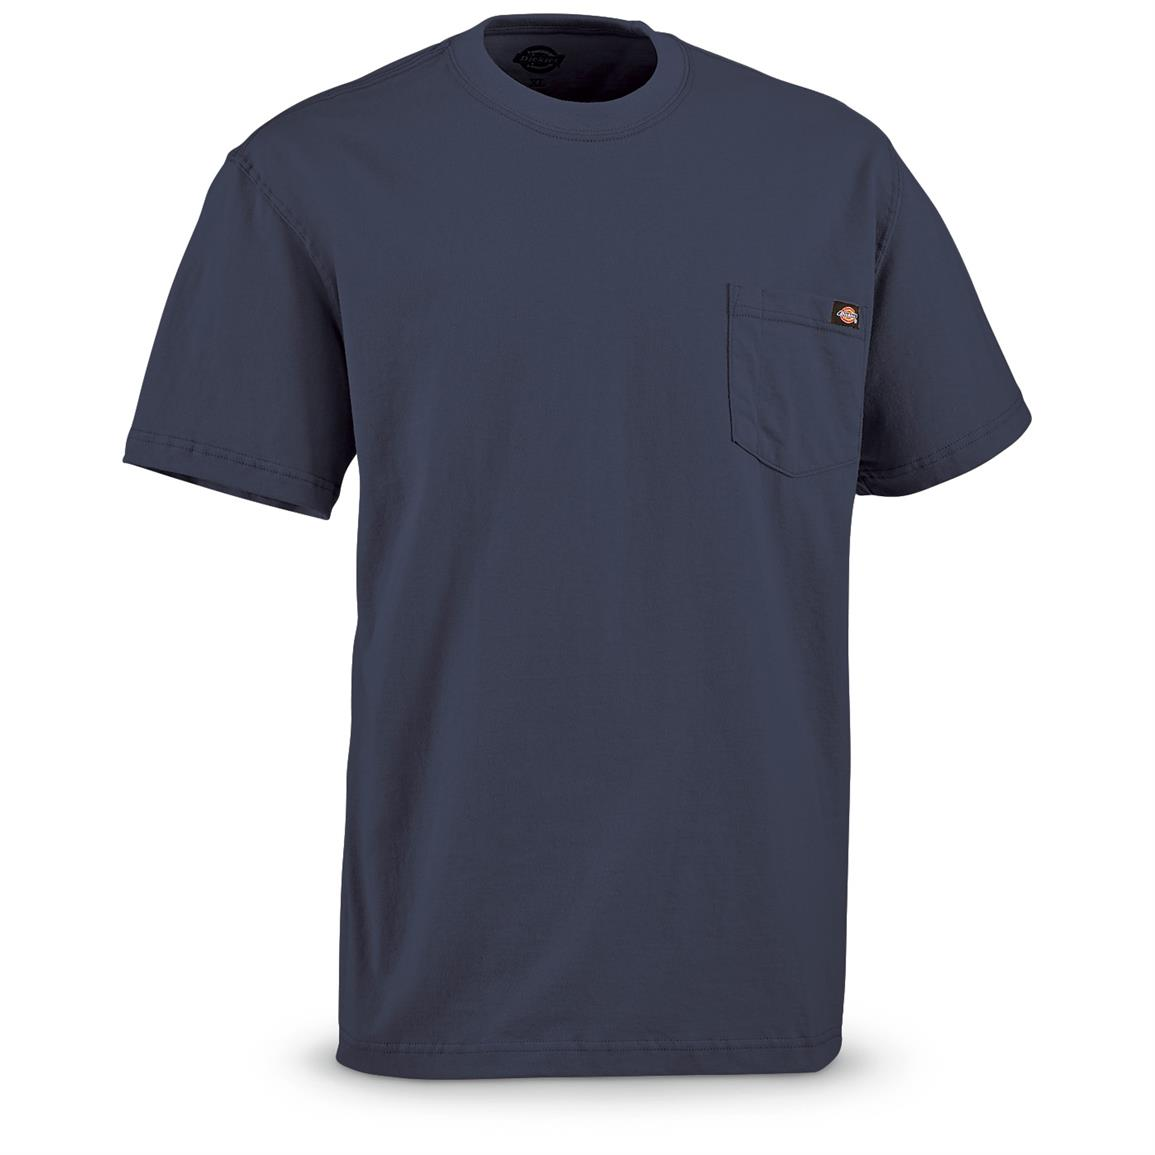 Dickies Men's Short Sleeve Pocket Shirt, 2 Pack, Navy